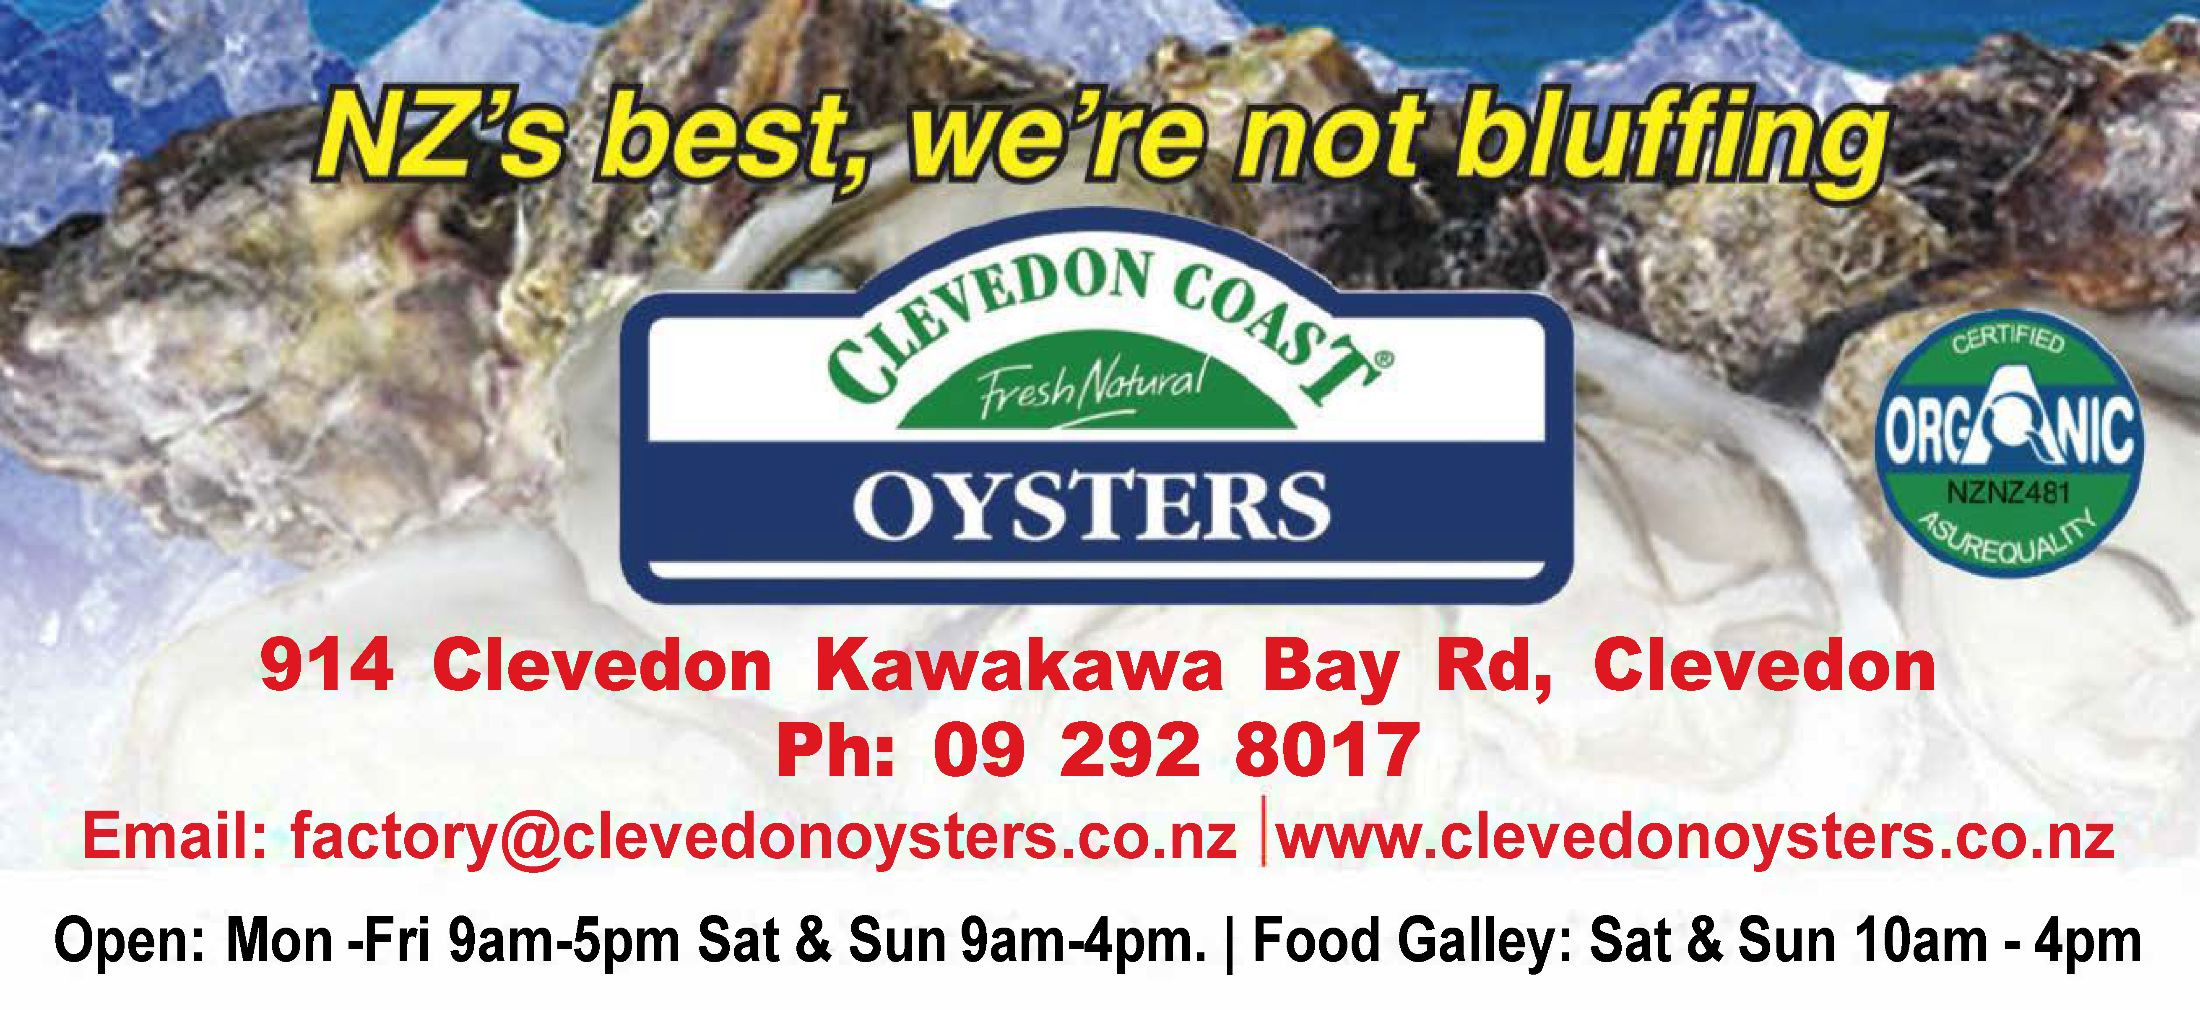 Clevedon Oysters